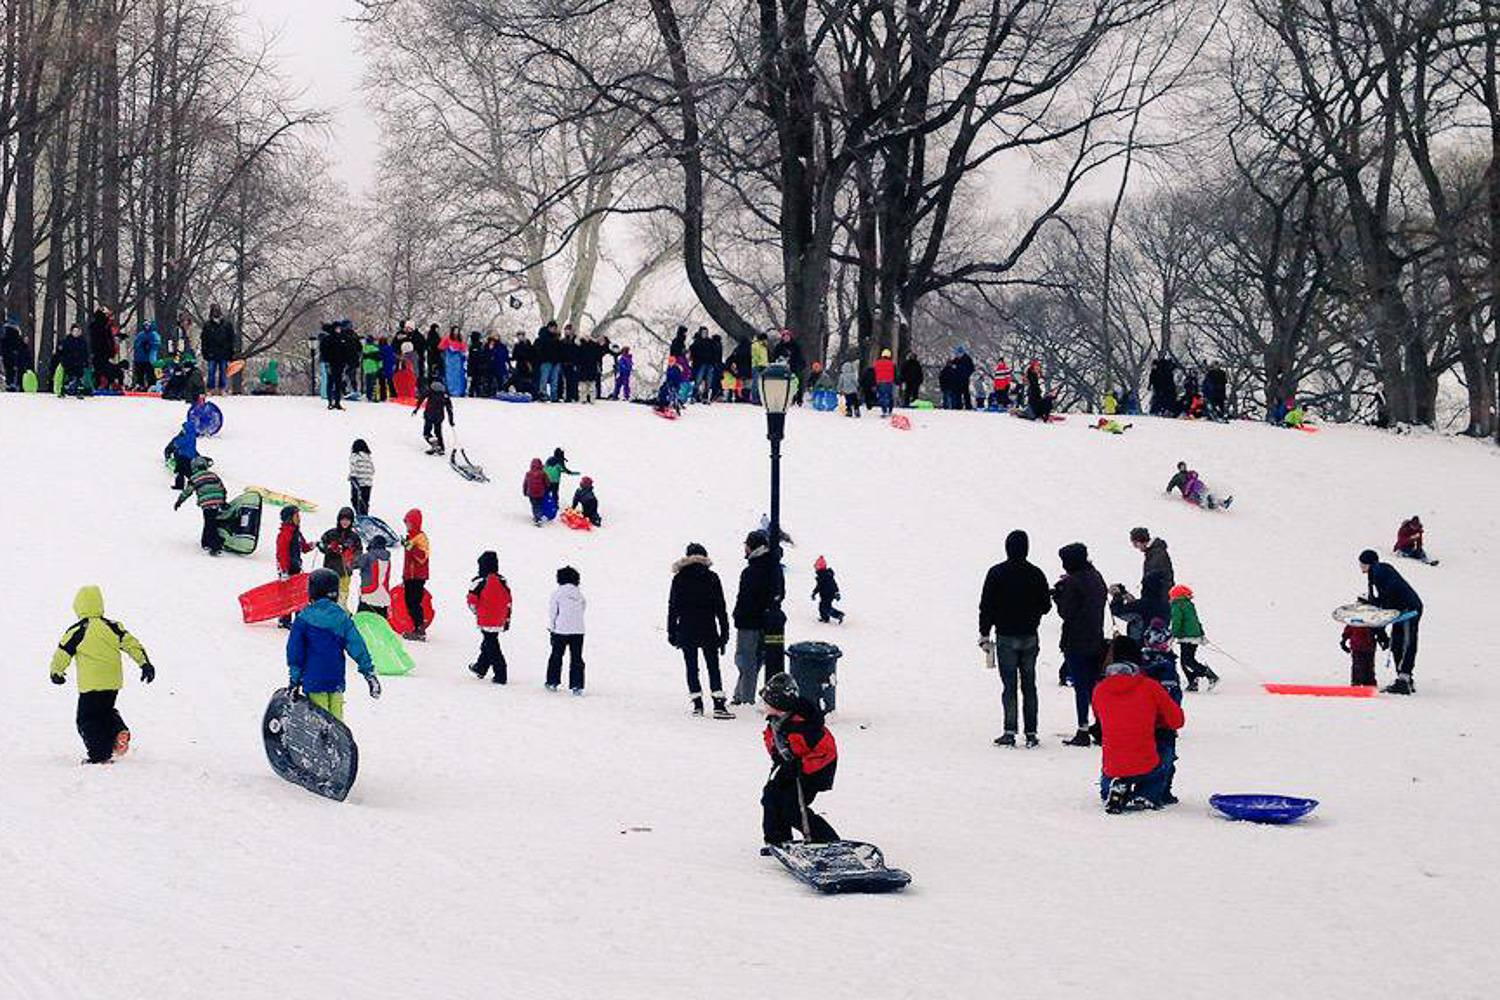 Image of kids sledding down a snow covered hill (Photo Credit: Twitter user Rachel Berkowitz @rachel)